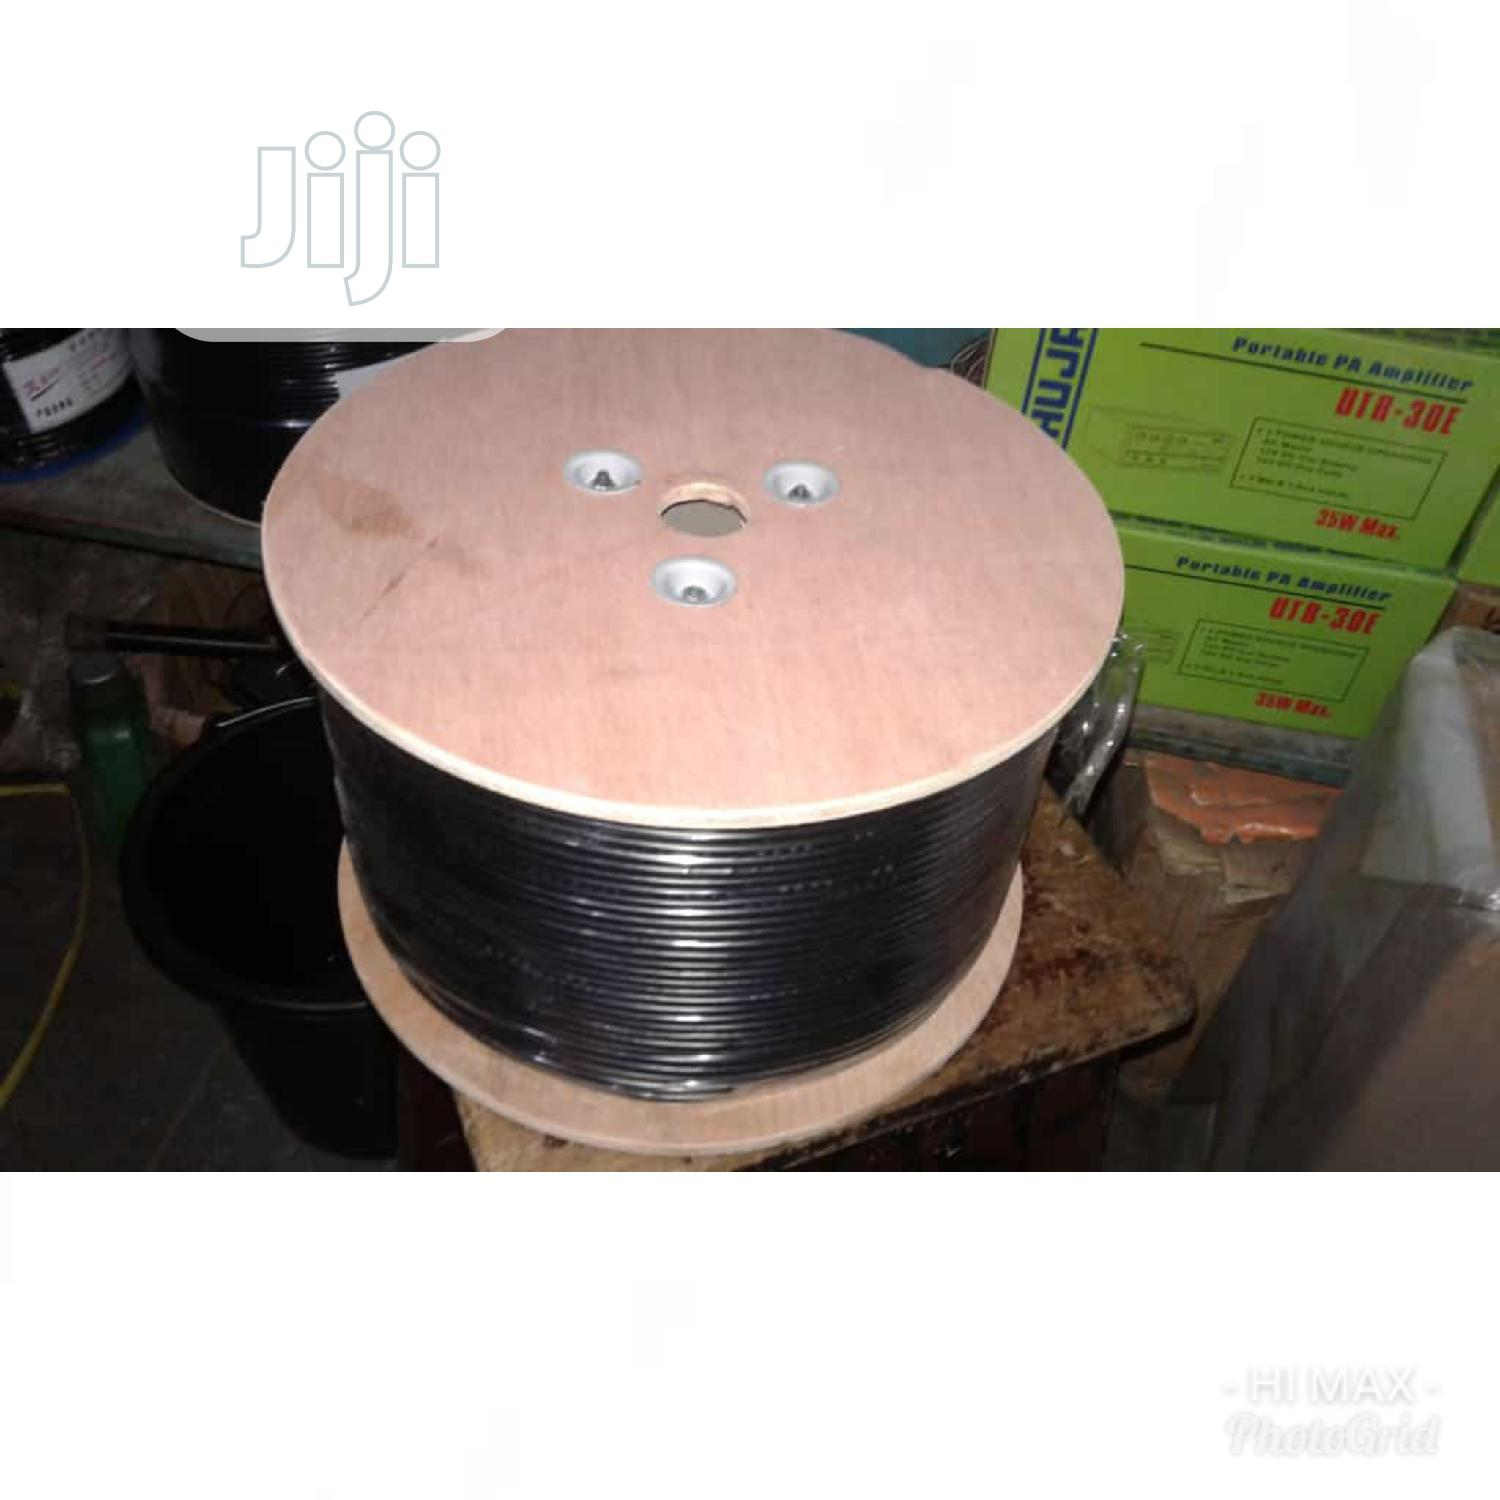 Rg59 100% Copper Coaxial Cable With Power - 305meters | Accessories & Supplies for Electronics for sale in Lagos Island (Eko), Lagos State, Nigeria